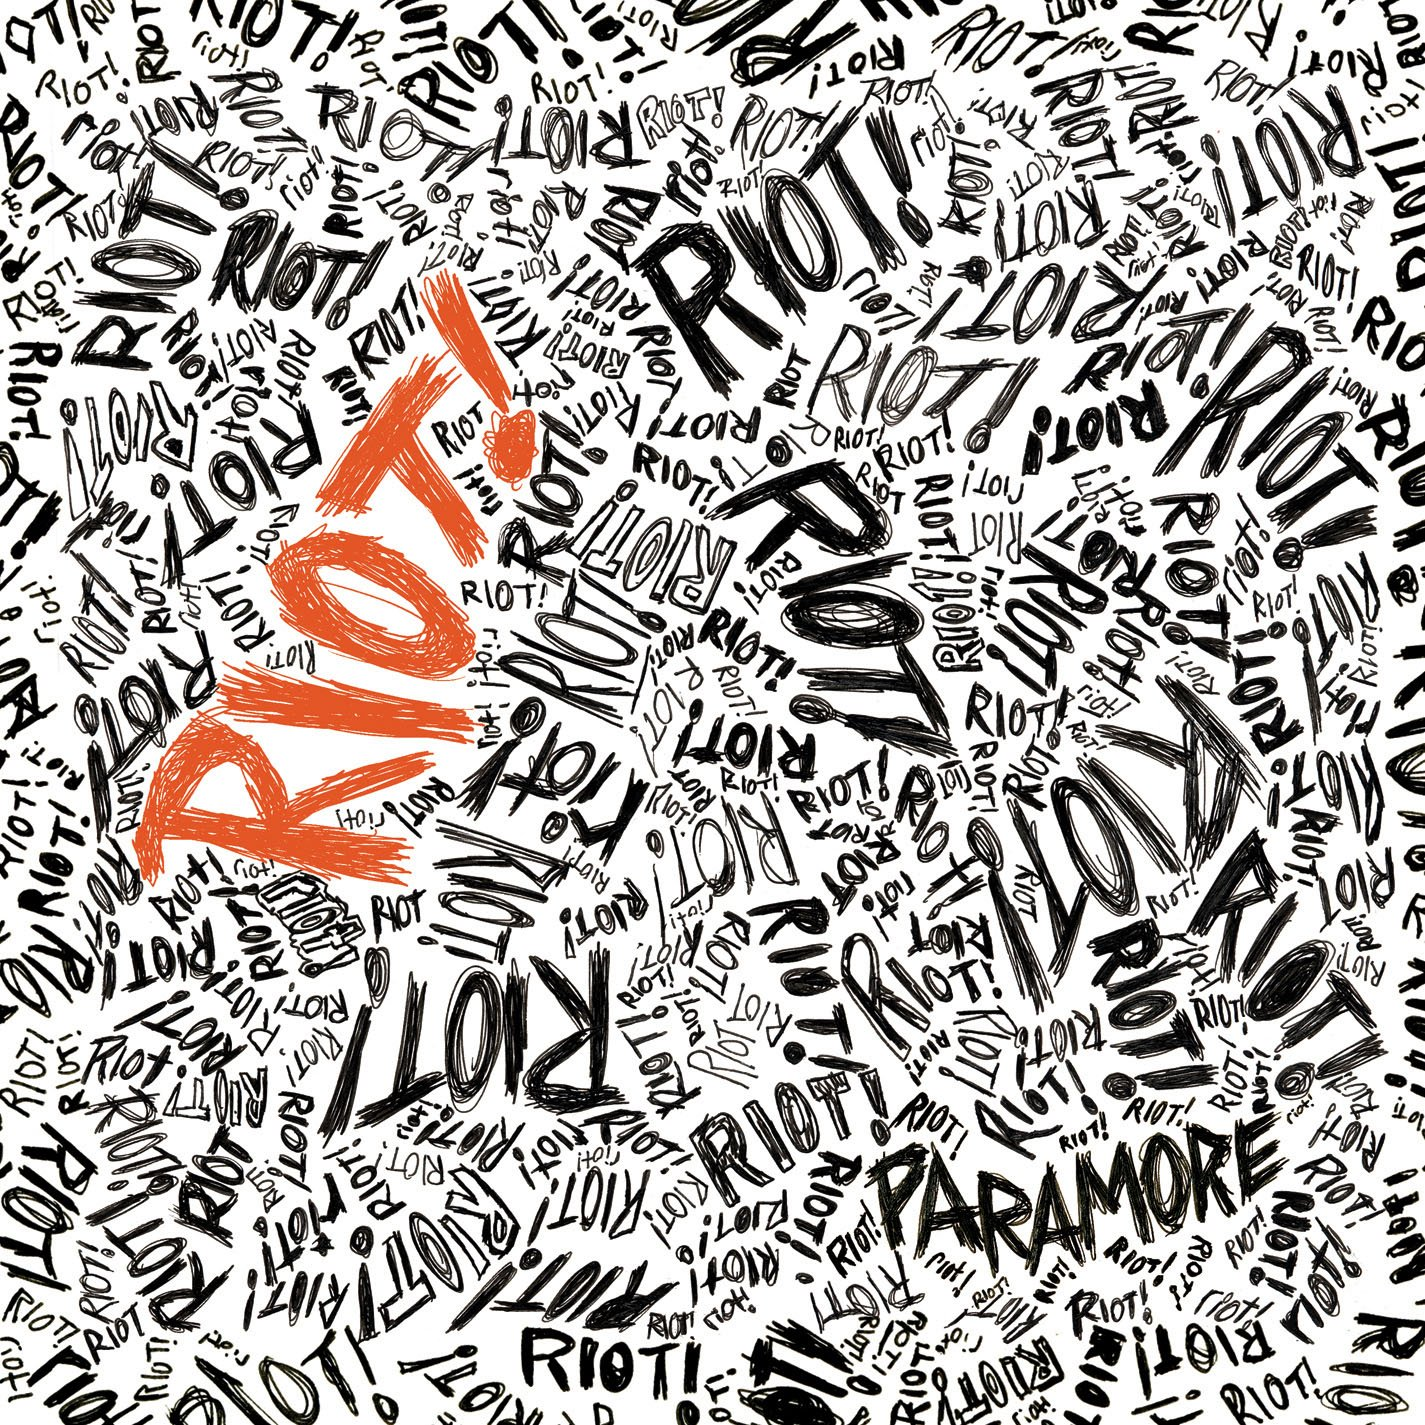 Image result for Riot paramore""